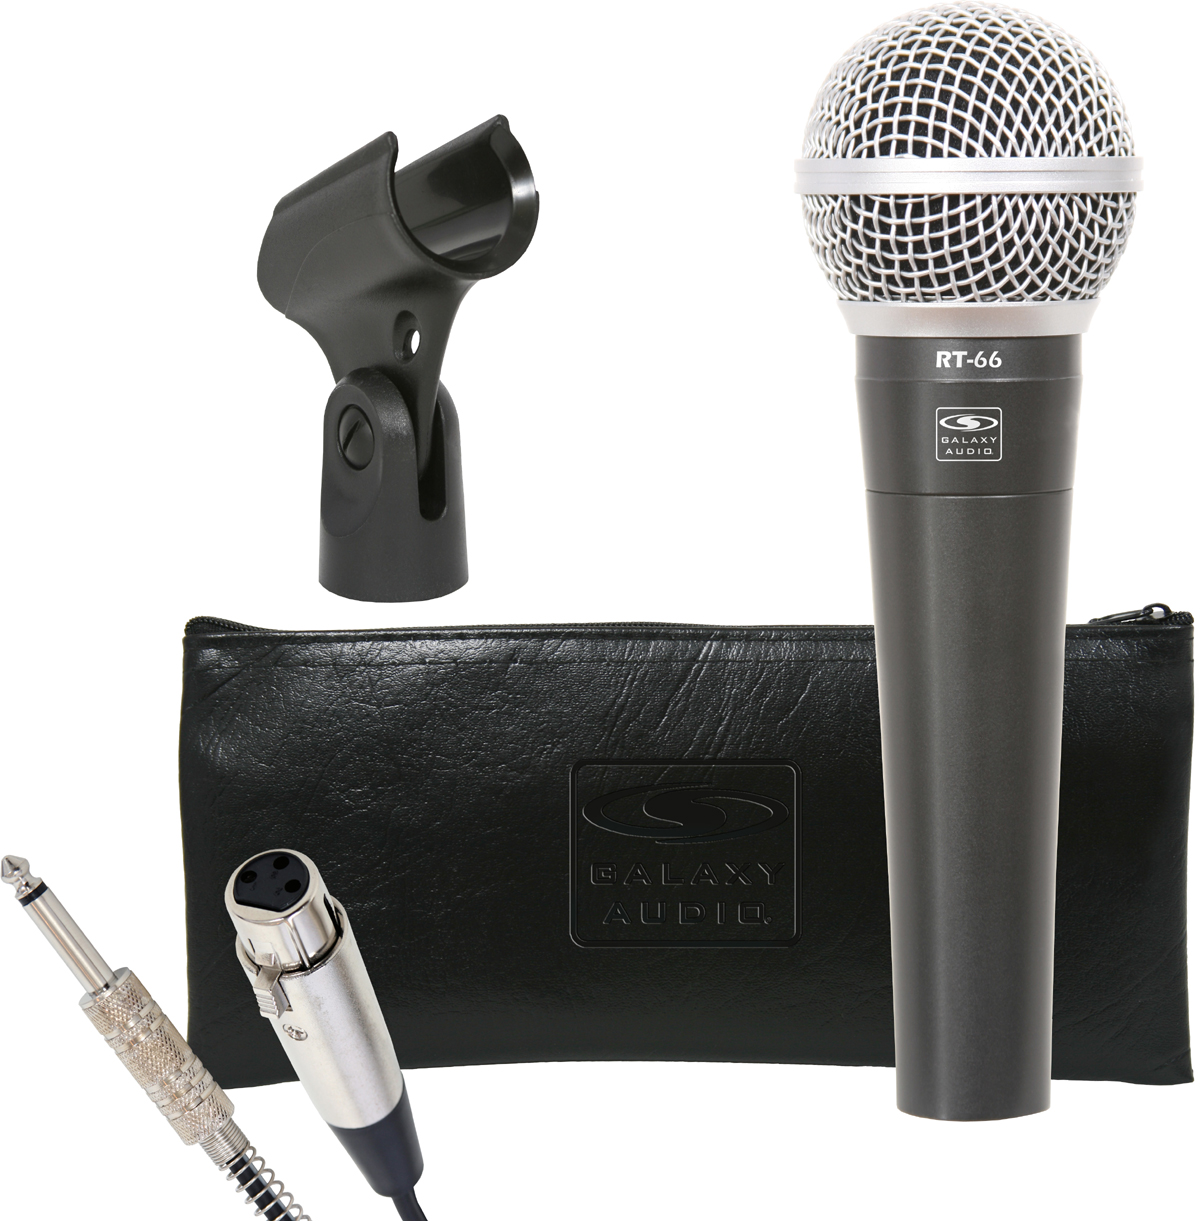 Galaxy Audio 3 pack of RT-66 mics Mix and Match any 3 RT-663X, RT-663P, RT-663SX, or RT-663SP to get this special pricing (priced each)